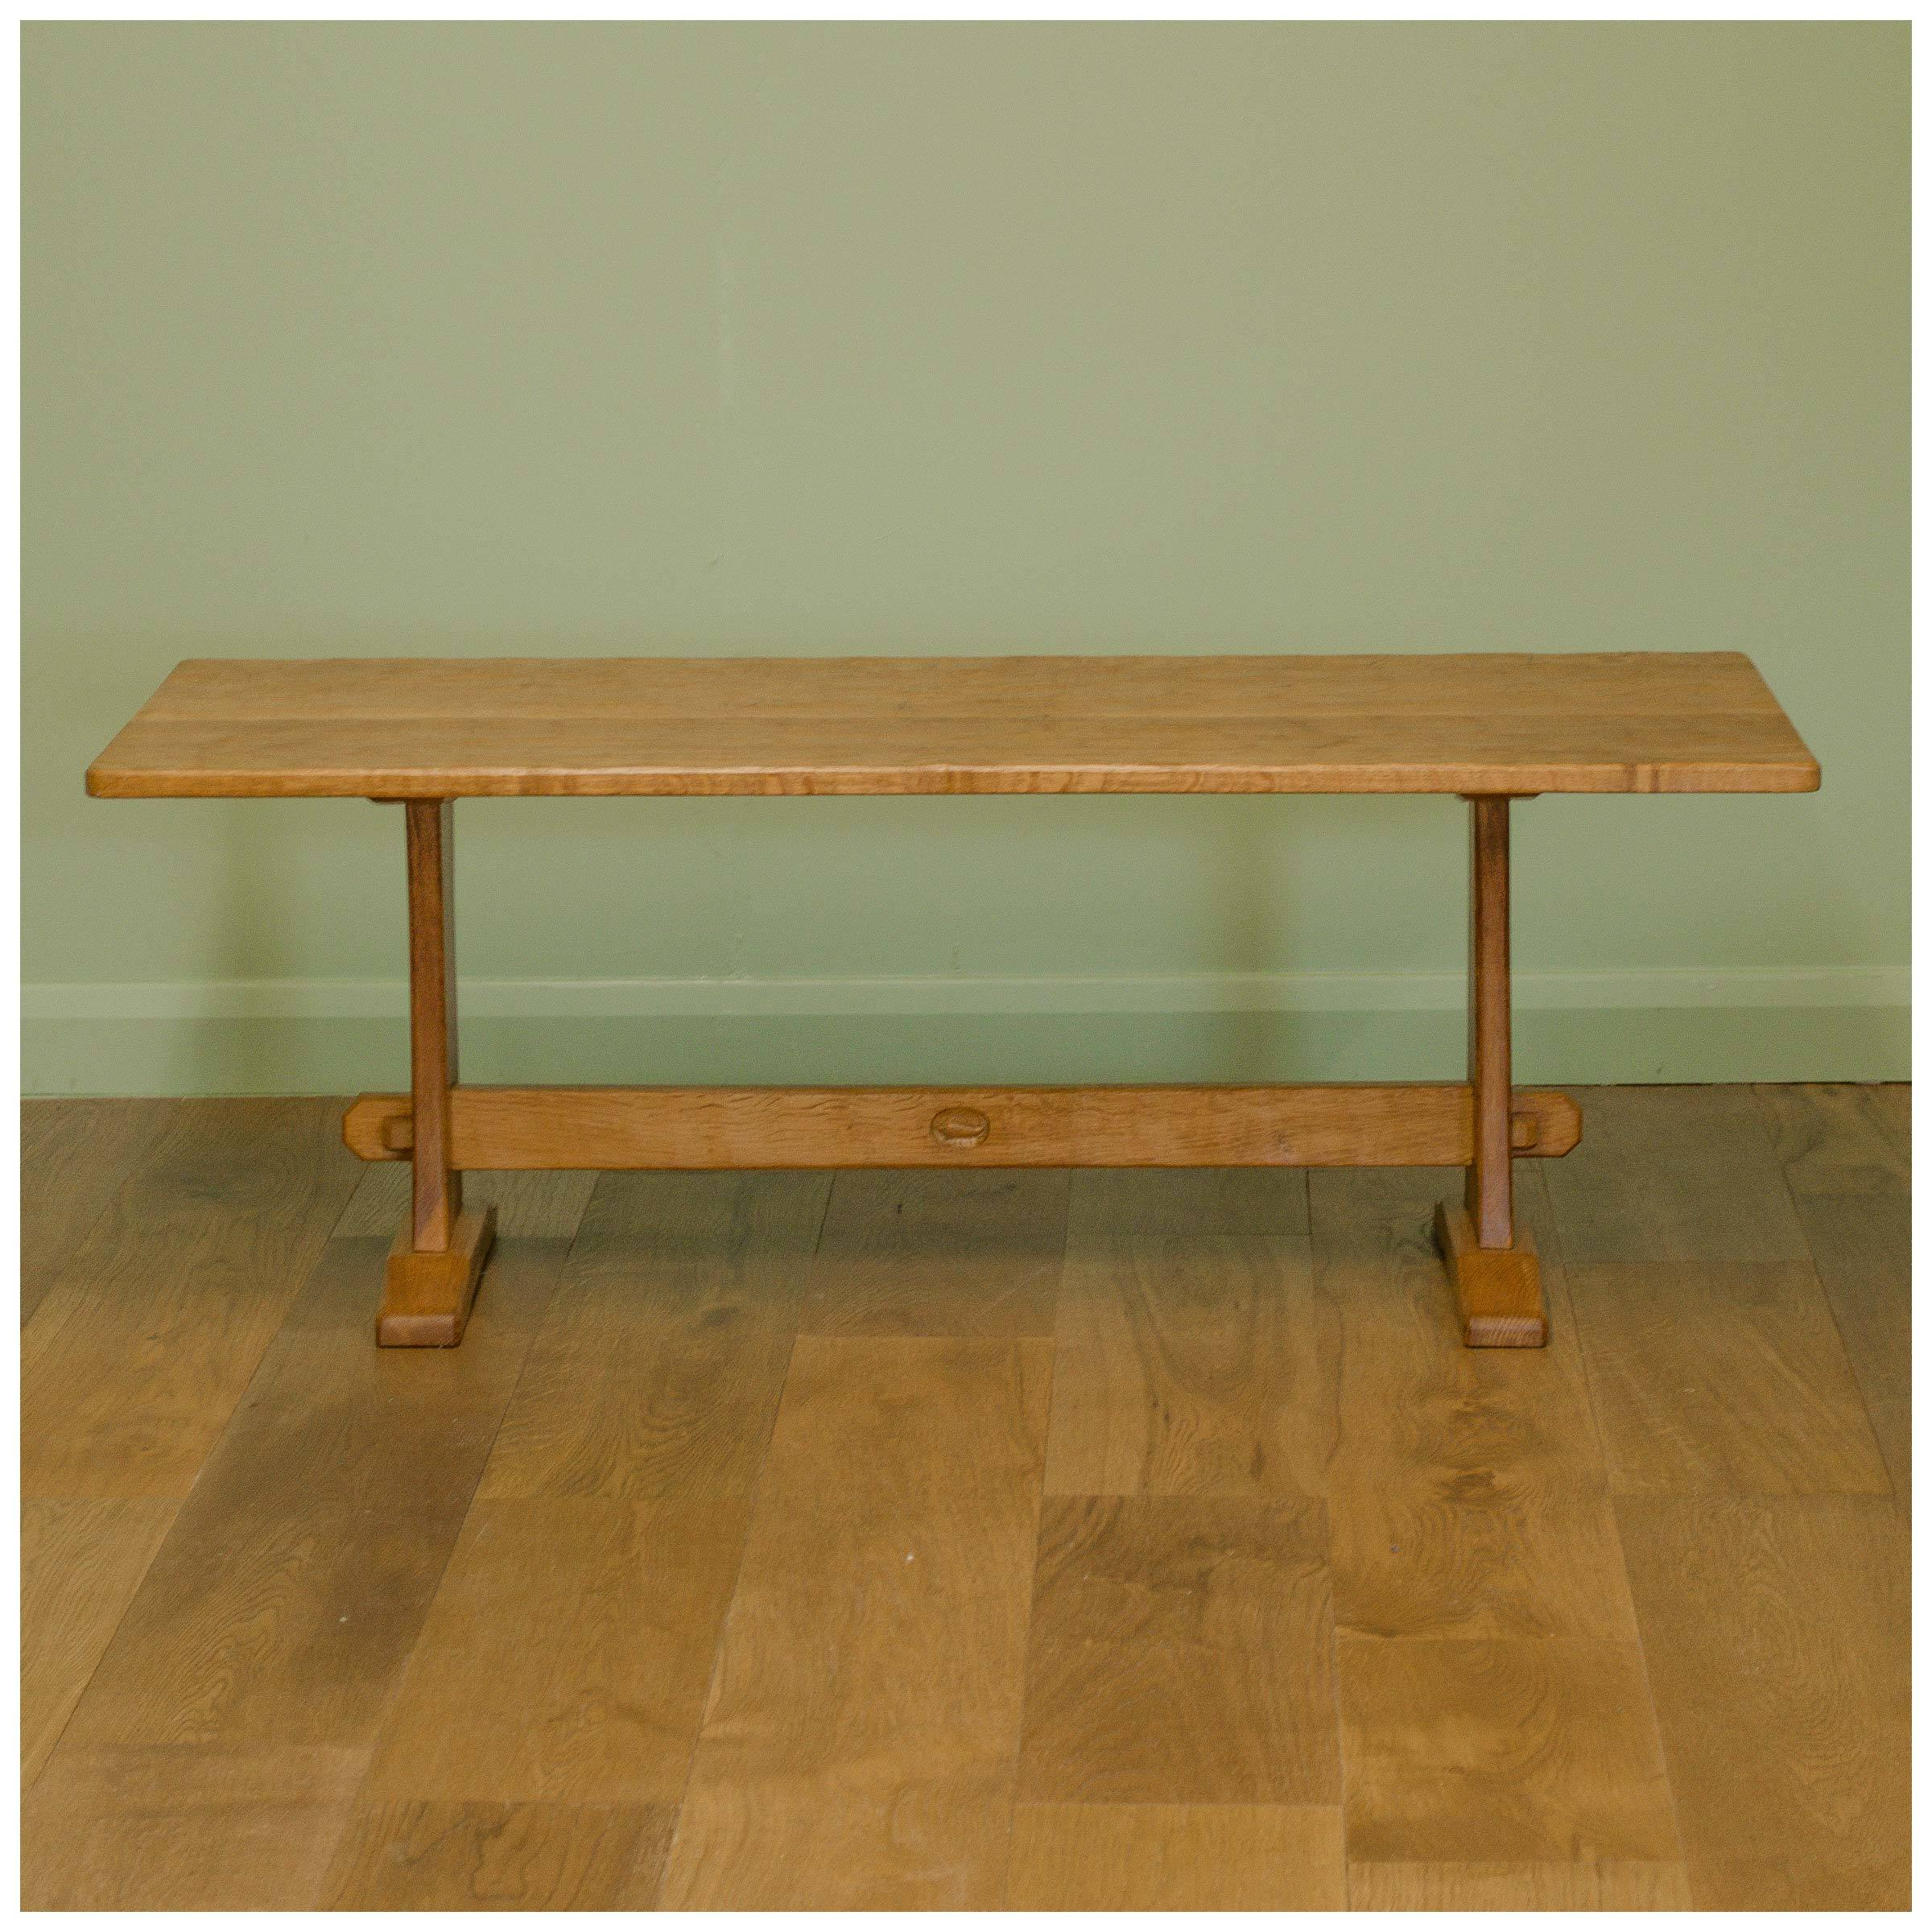 4-foot-yorkshire-school-adzed-oak-coffee-table-by-derek-fishman-later-lizardman-slater-b0020152g.jpg